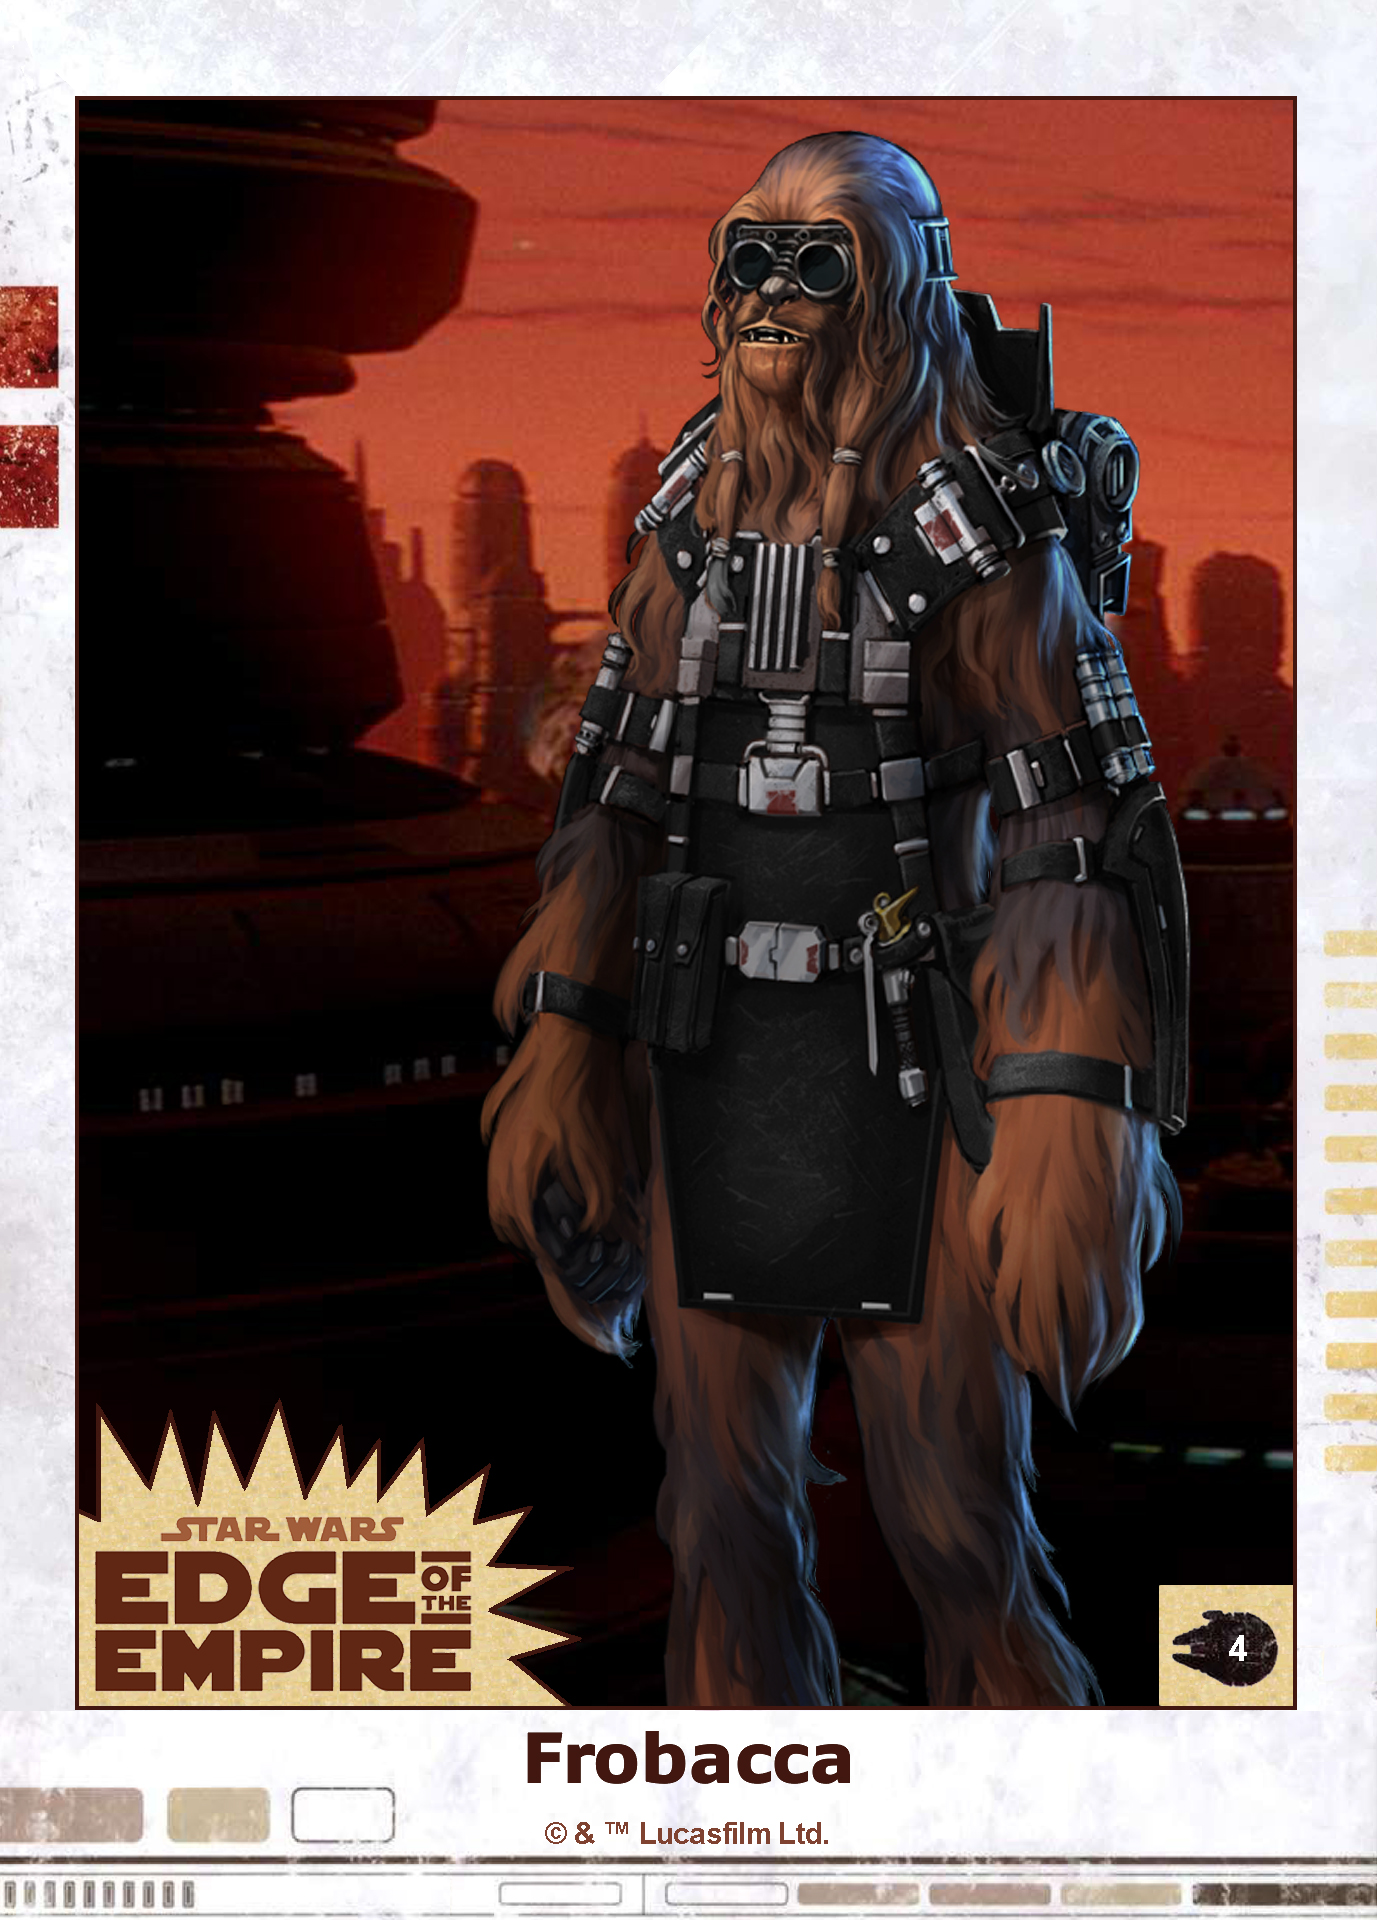 EOTE_EOME_4_Frobacca.jpg